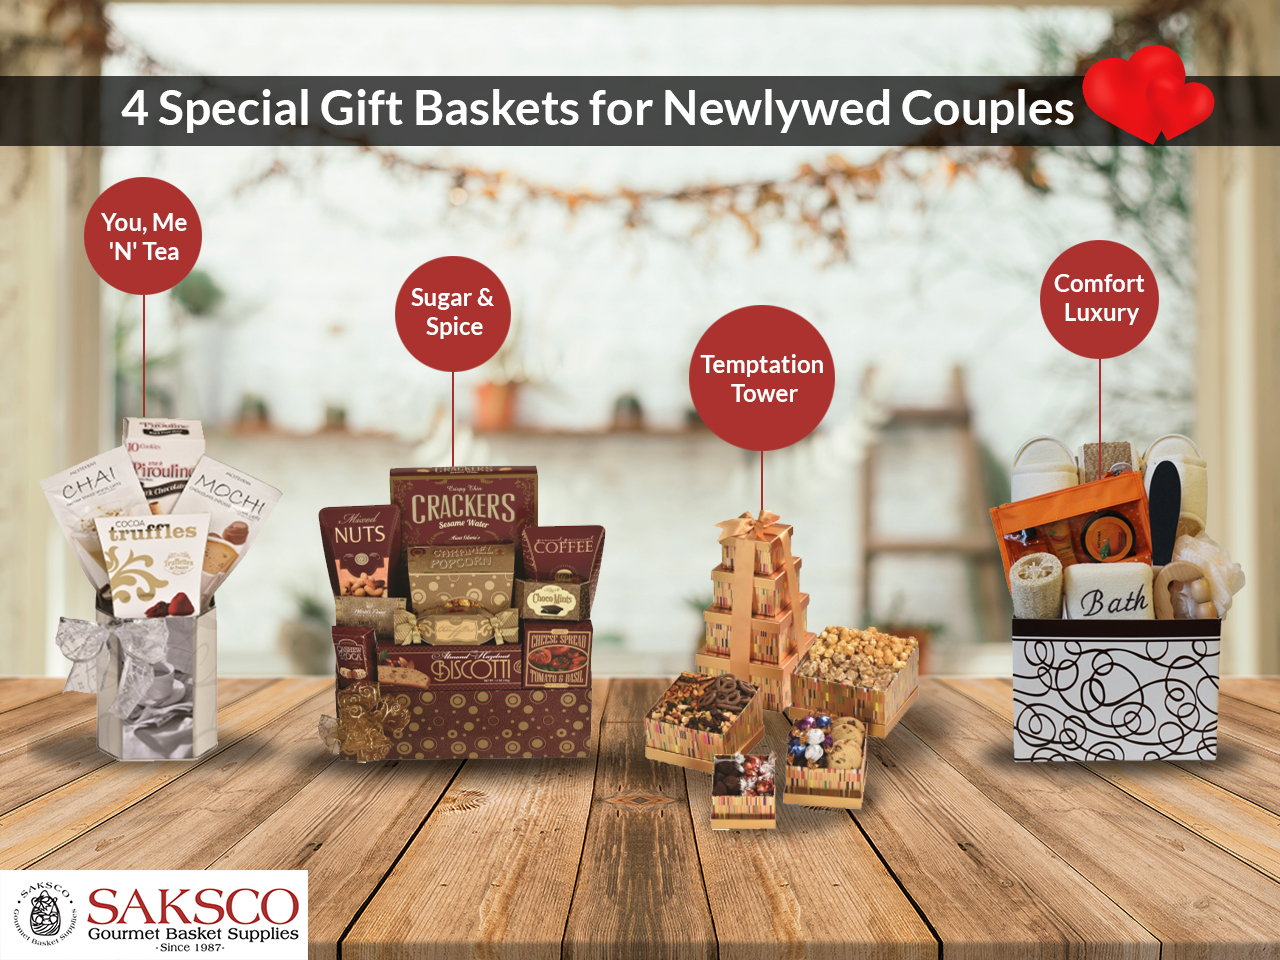 4 special gift baskets for newly married couples